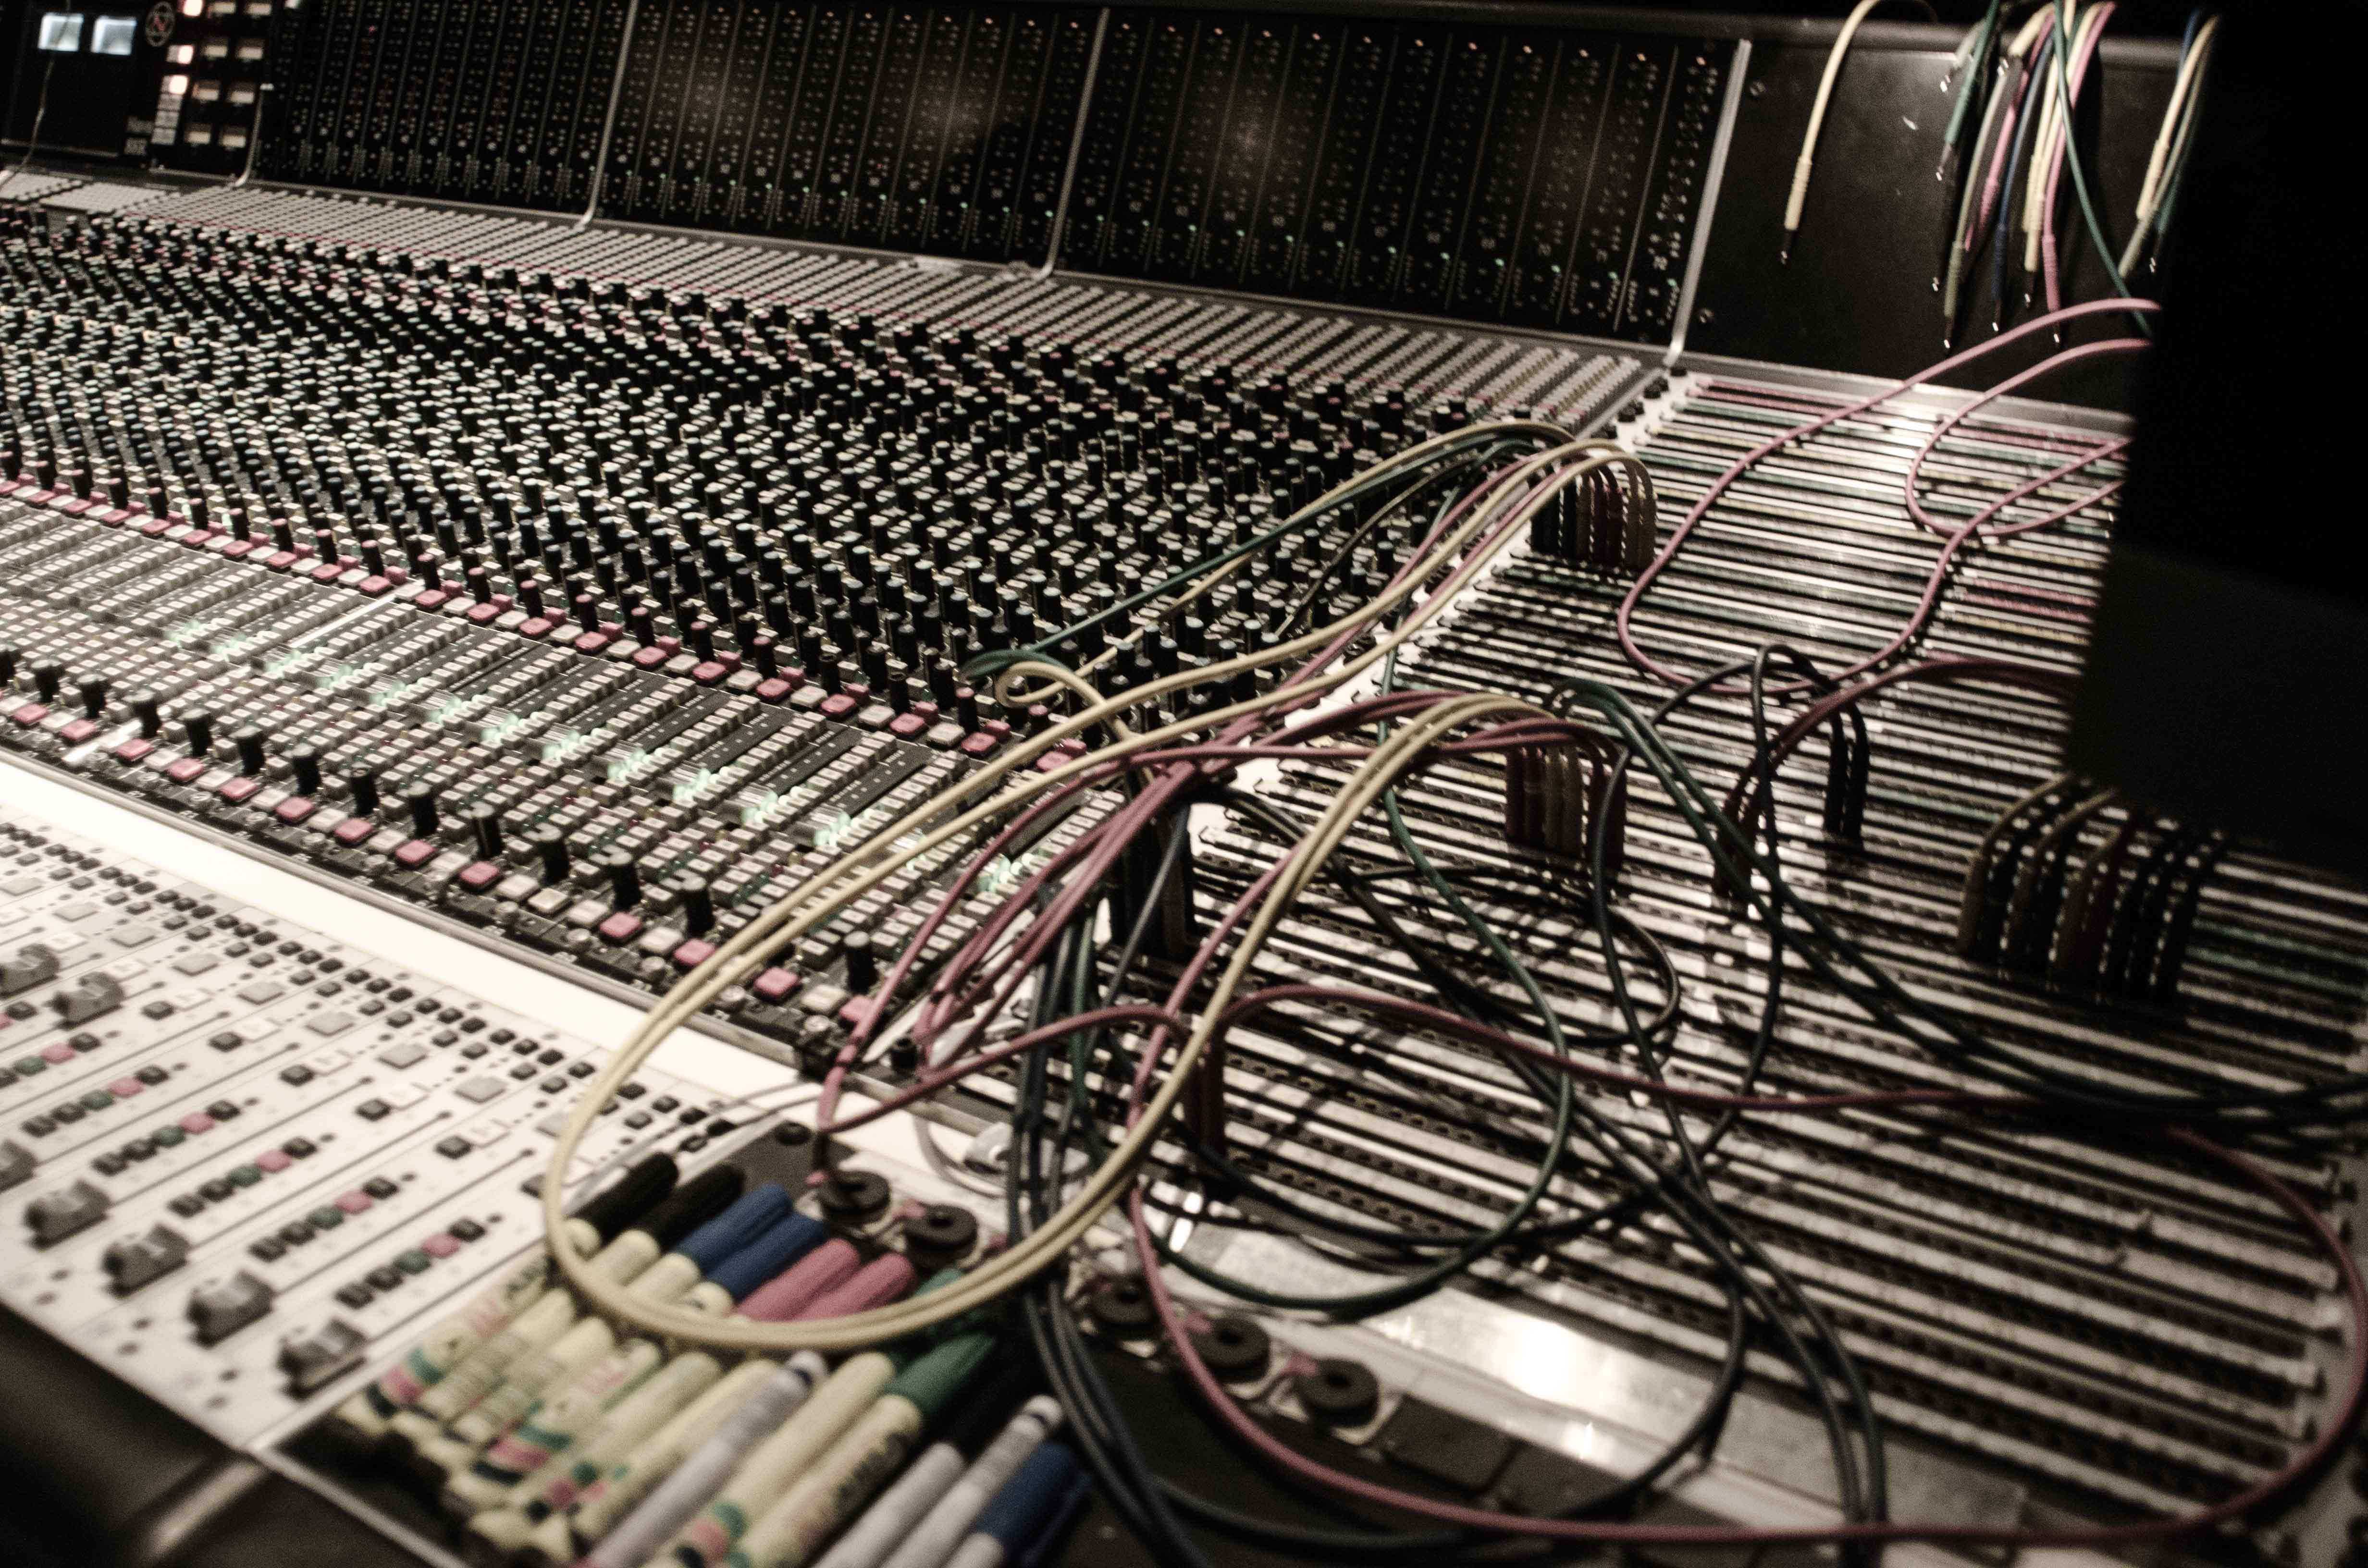 The Neves patch bay